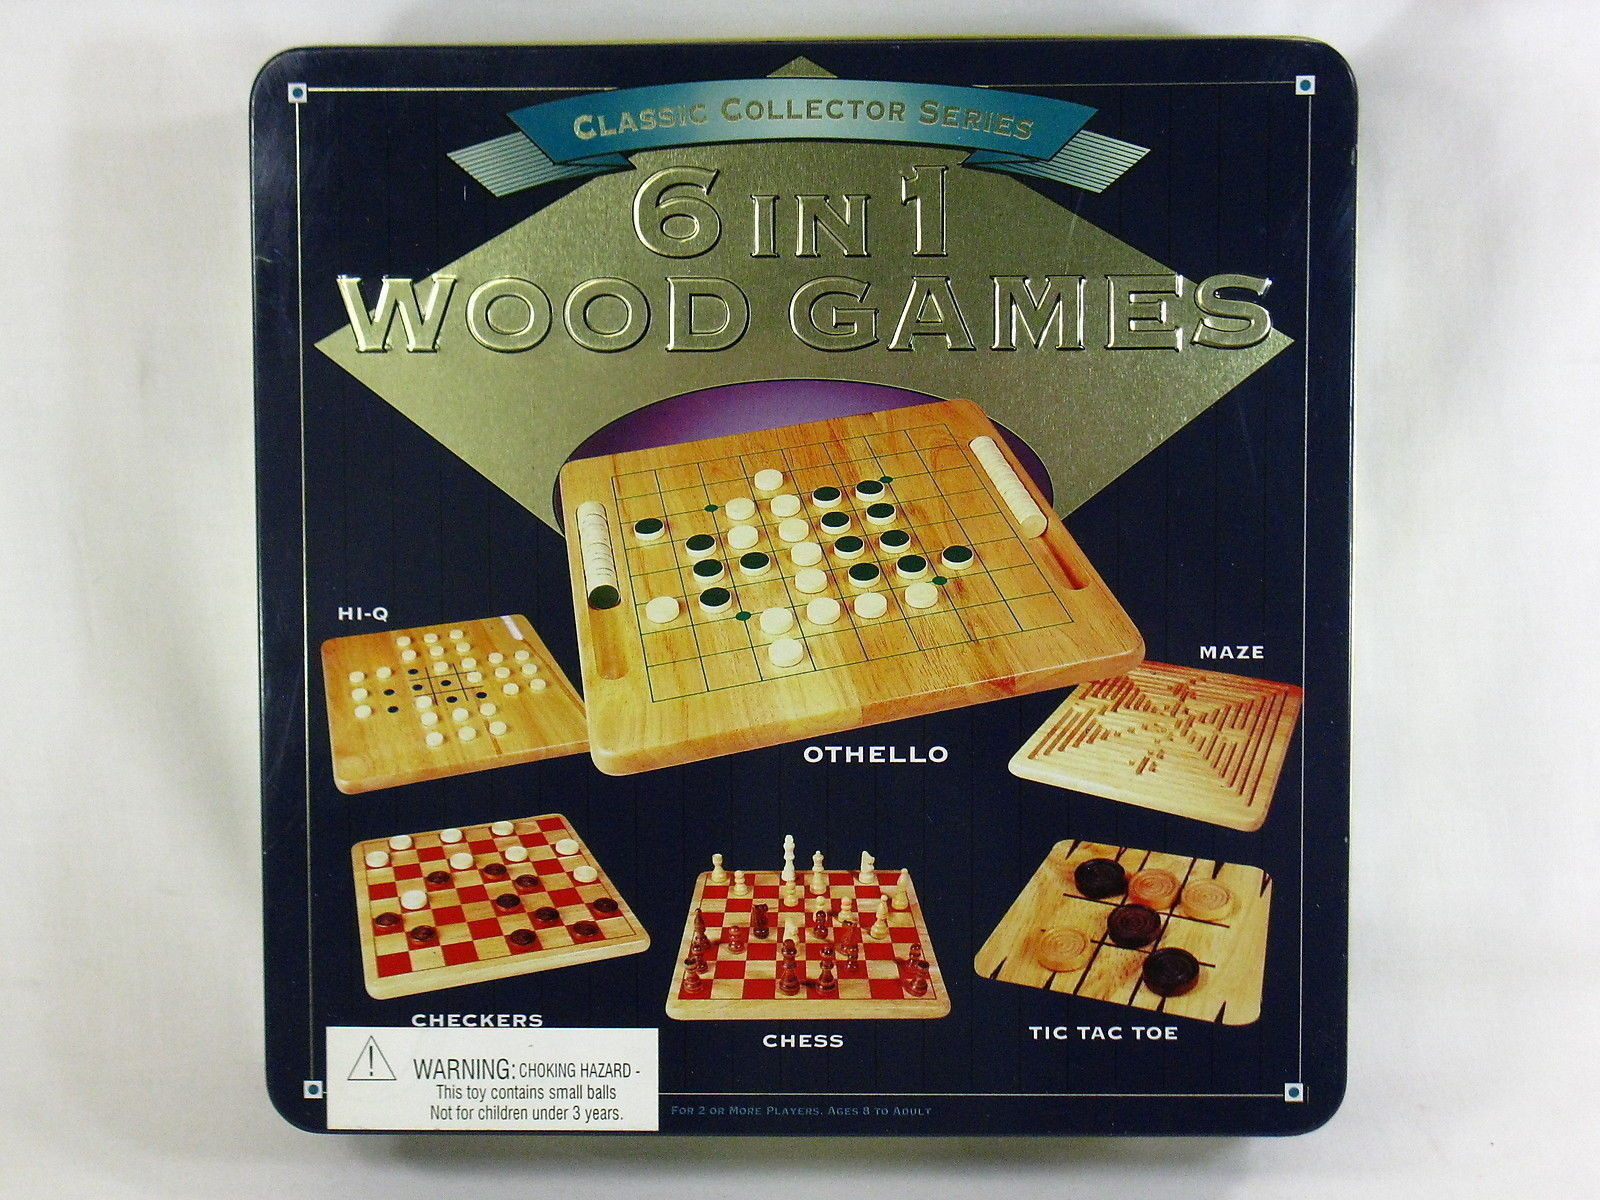 6 IN 1 WOOD GAMES CLASSIC COLLECTOR SERIES 1999 PRESSMAN 99% COMPLETE - $9.90